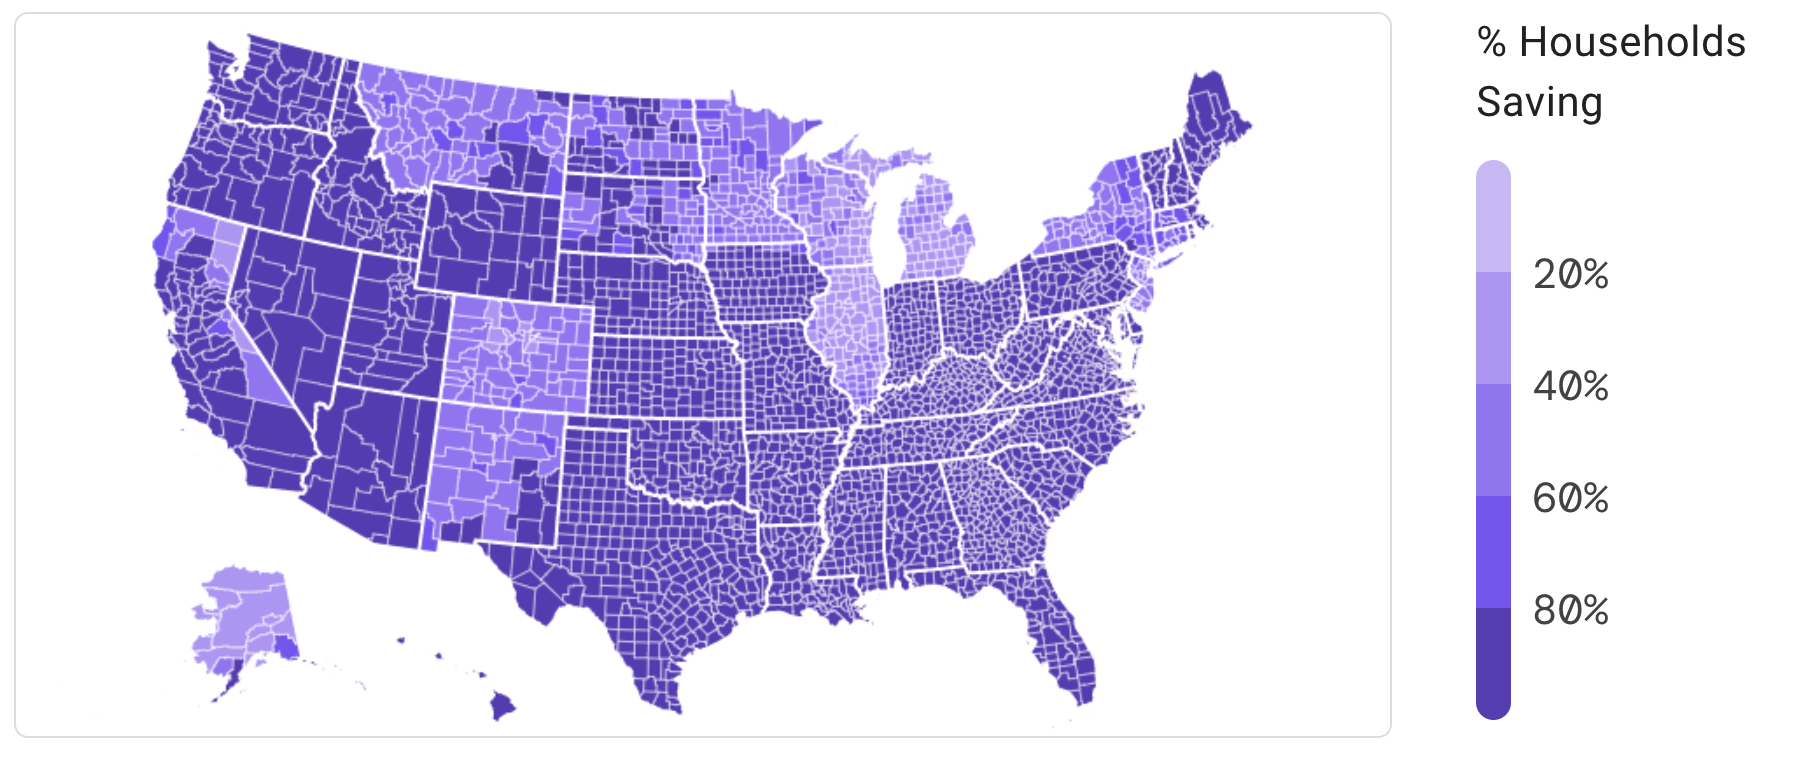 Map of the US showing that most households in counties across the nation would save on their energy bills with modern, electric appliances. In shades of purple, shows each county savings from 0 to 100%, with 100% represented by the darker purple.